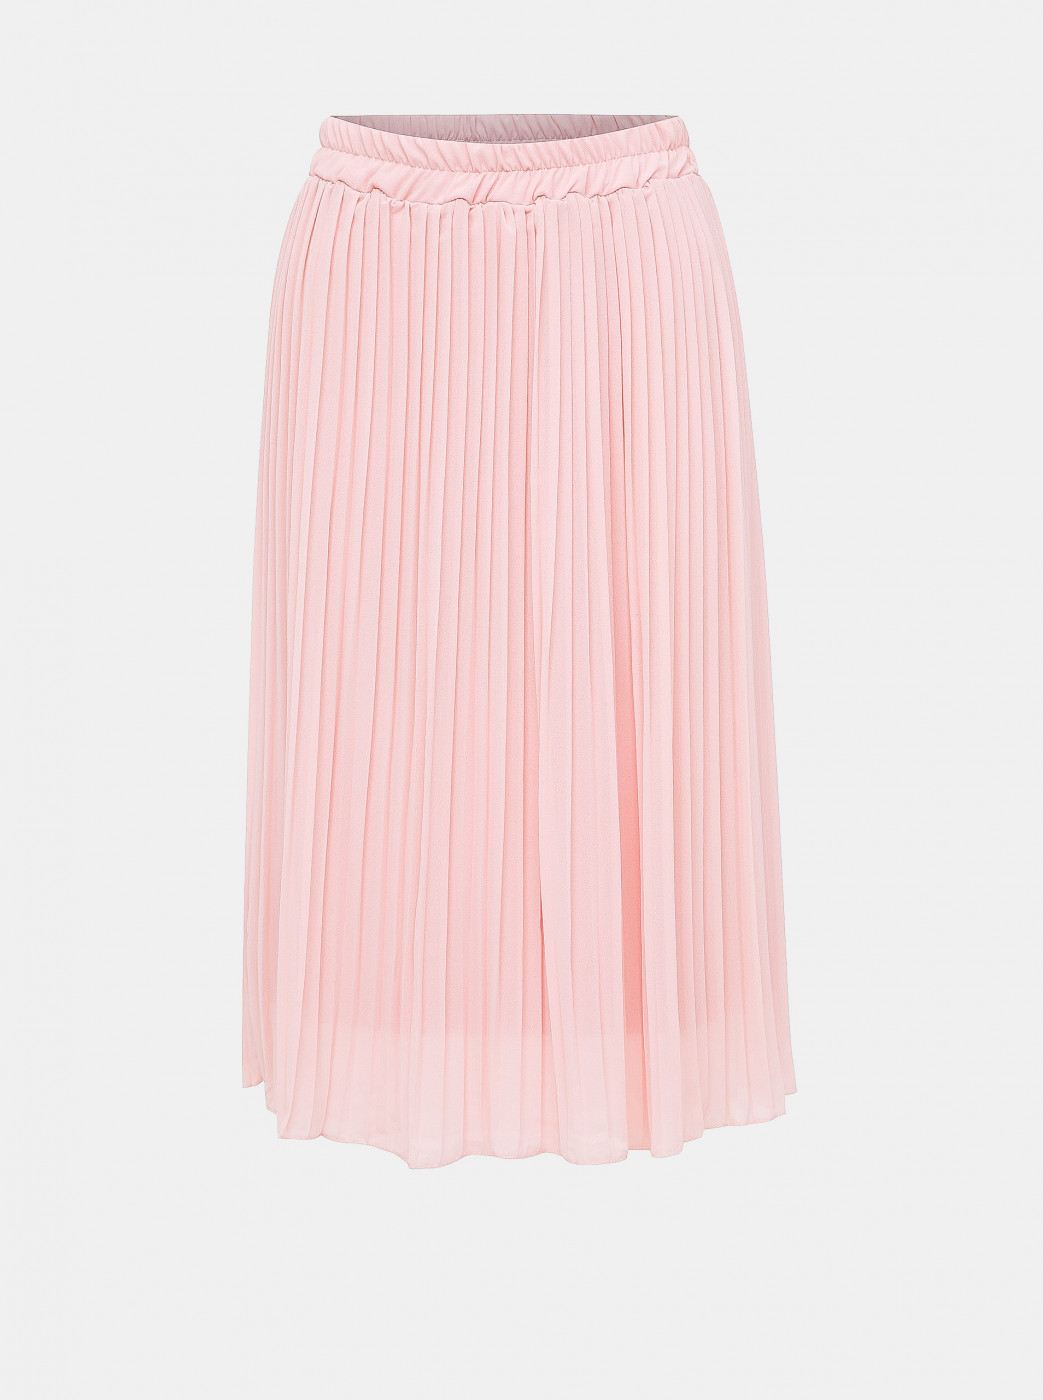 Haily's Lisi Pink Pleated Skirt